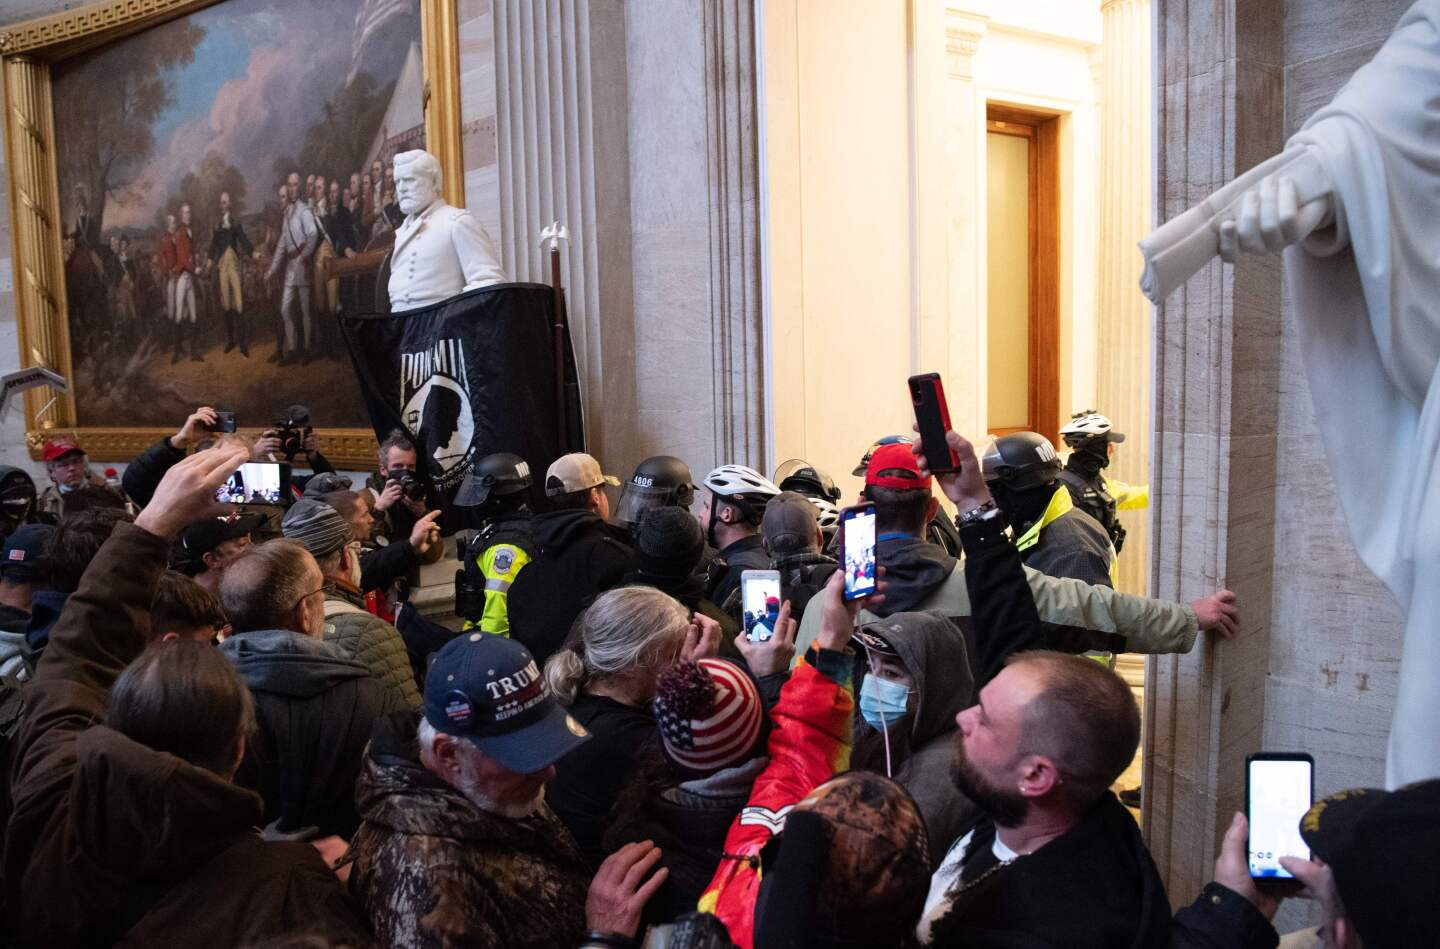 Supporters of US President Donald Trump protest in the US Capitol's Rotunda on January 6, 2021, in Washington, DC. - Demonstrators breeched security and entered the Capitol as Congress debated the a 2020 presidential election Electoral Vote Certification. (Photo by SAUL LOEB / AFP) (Photo by SAUL LOEB/AFP via Getty Images)